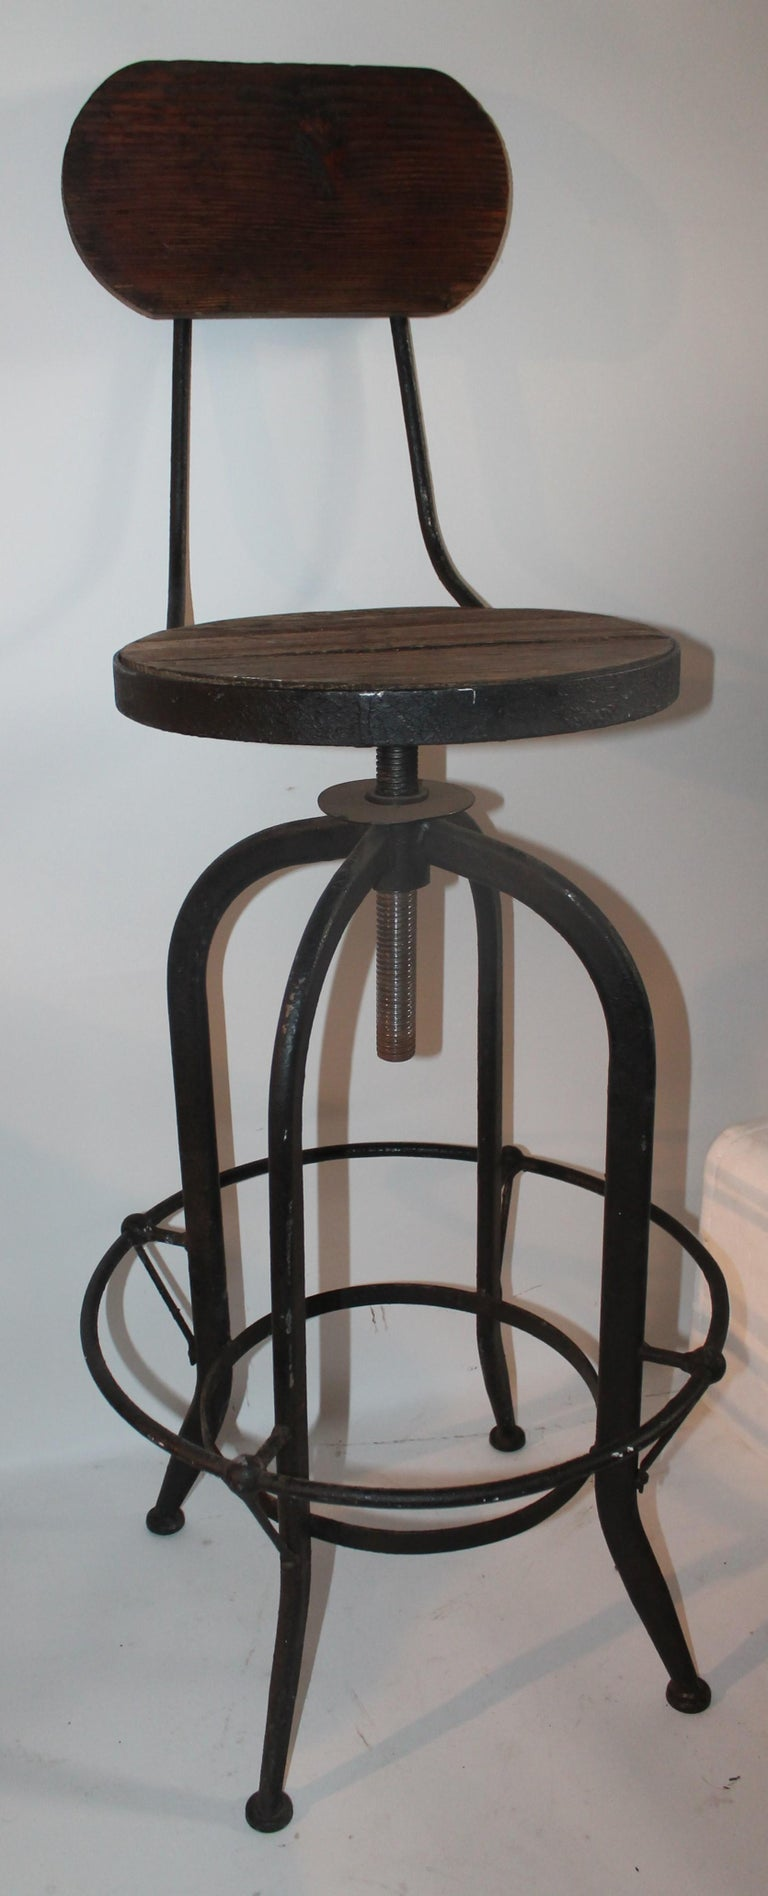 This cool rustic architect writing stool or store counter stool is in great condition and swivels too. It can be adjusted up or down.